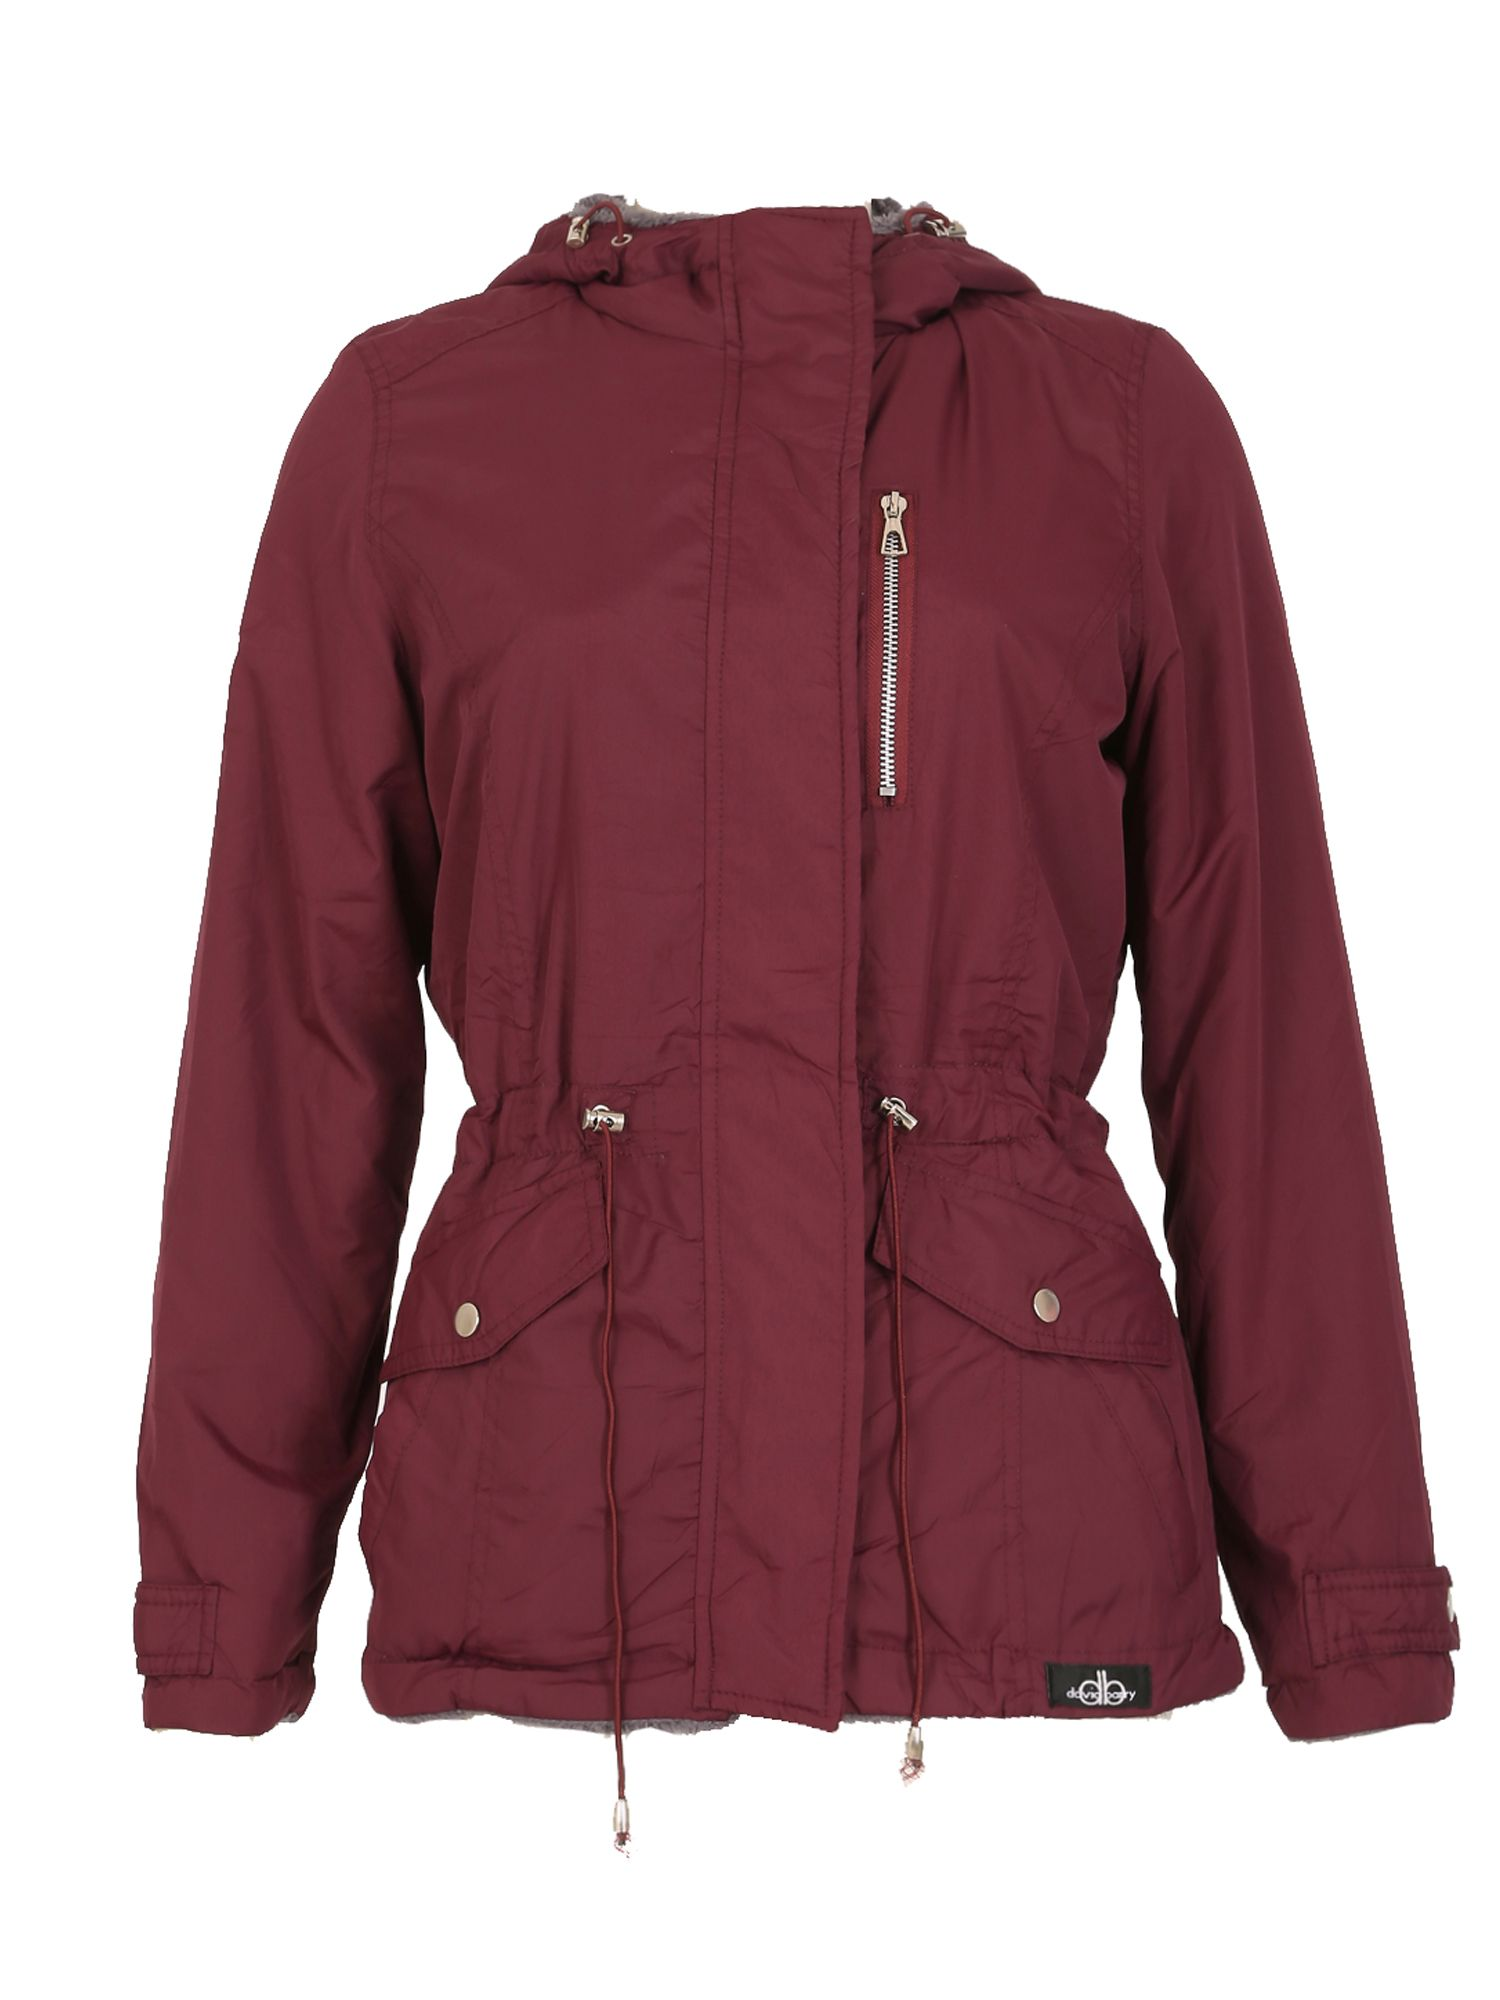 David Barry Reversible Multi Pocket Jacket, Red